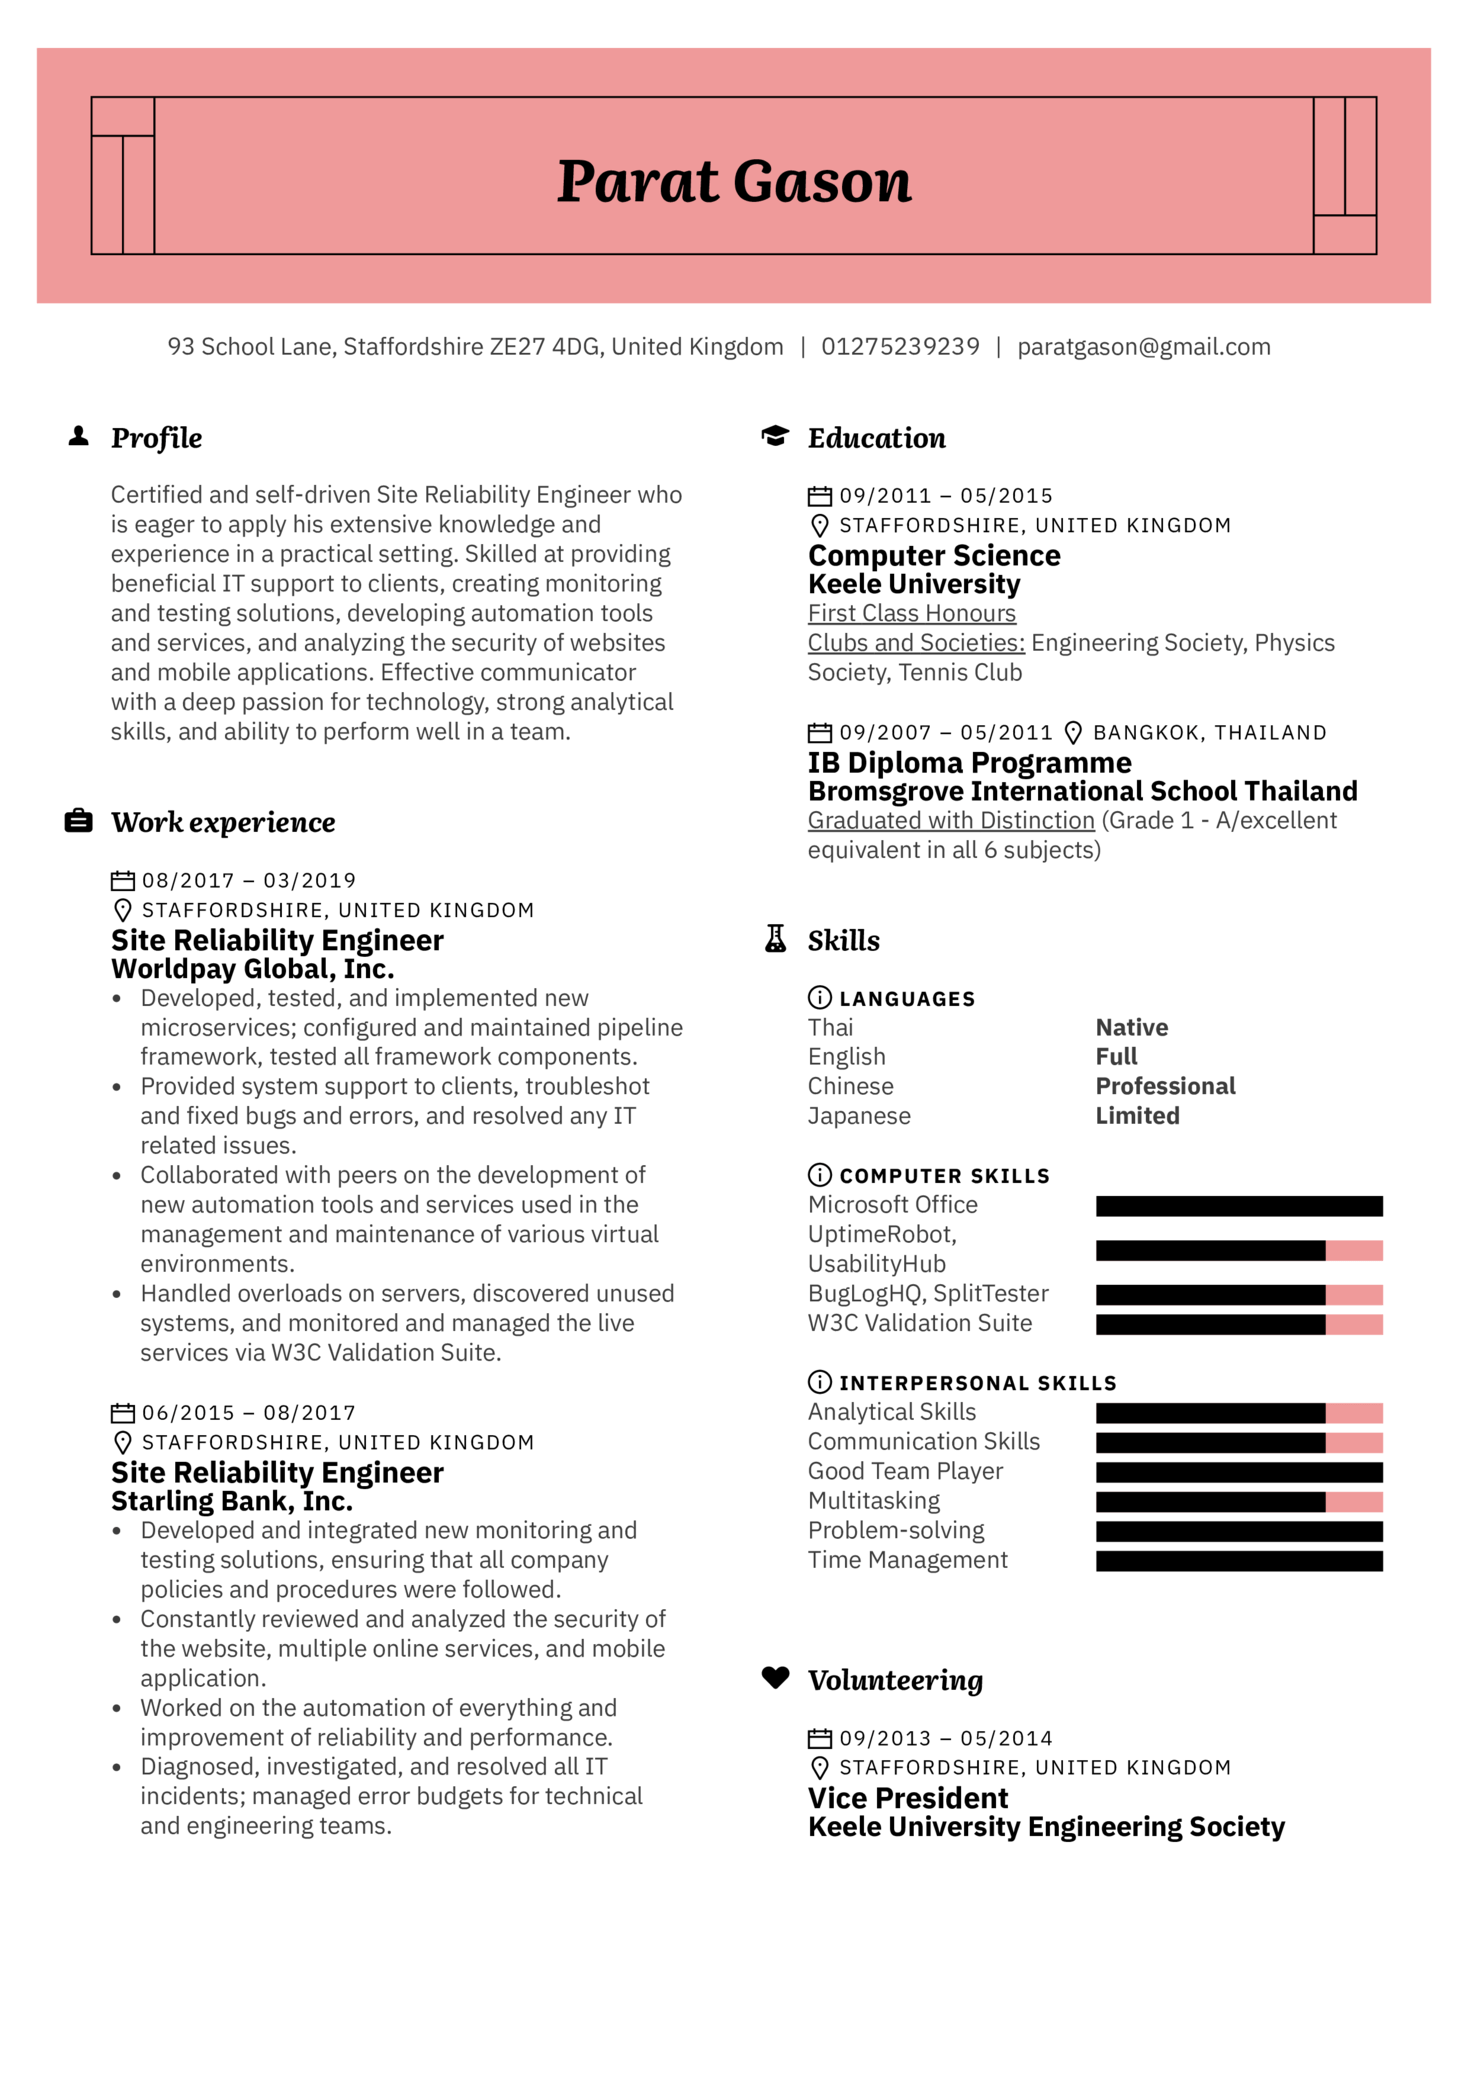 Site Reliability Engineer Resume Example (Part 1)